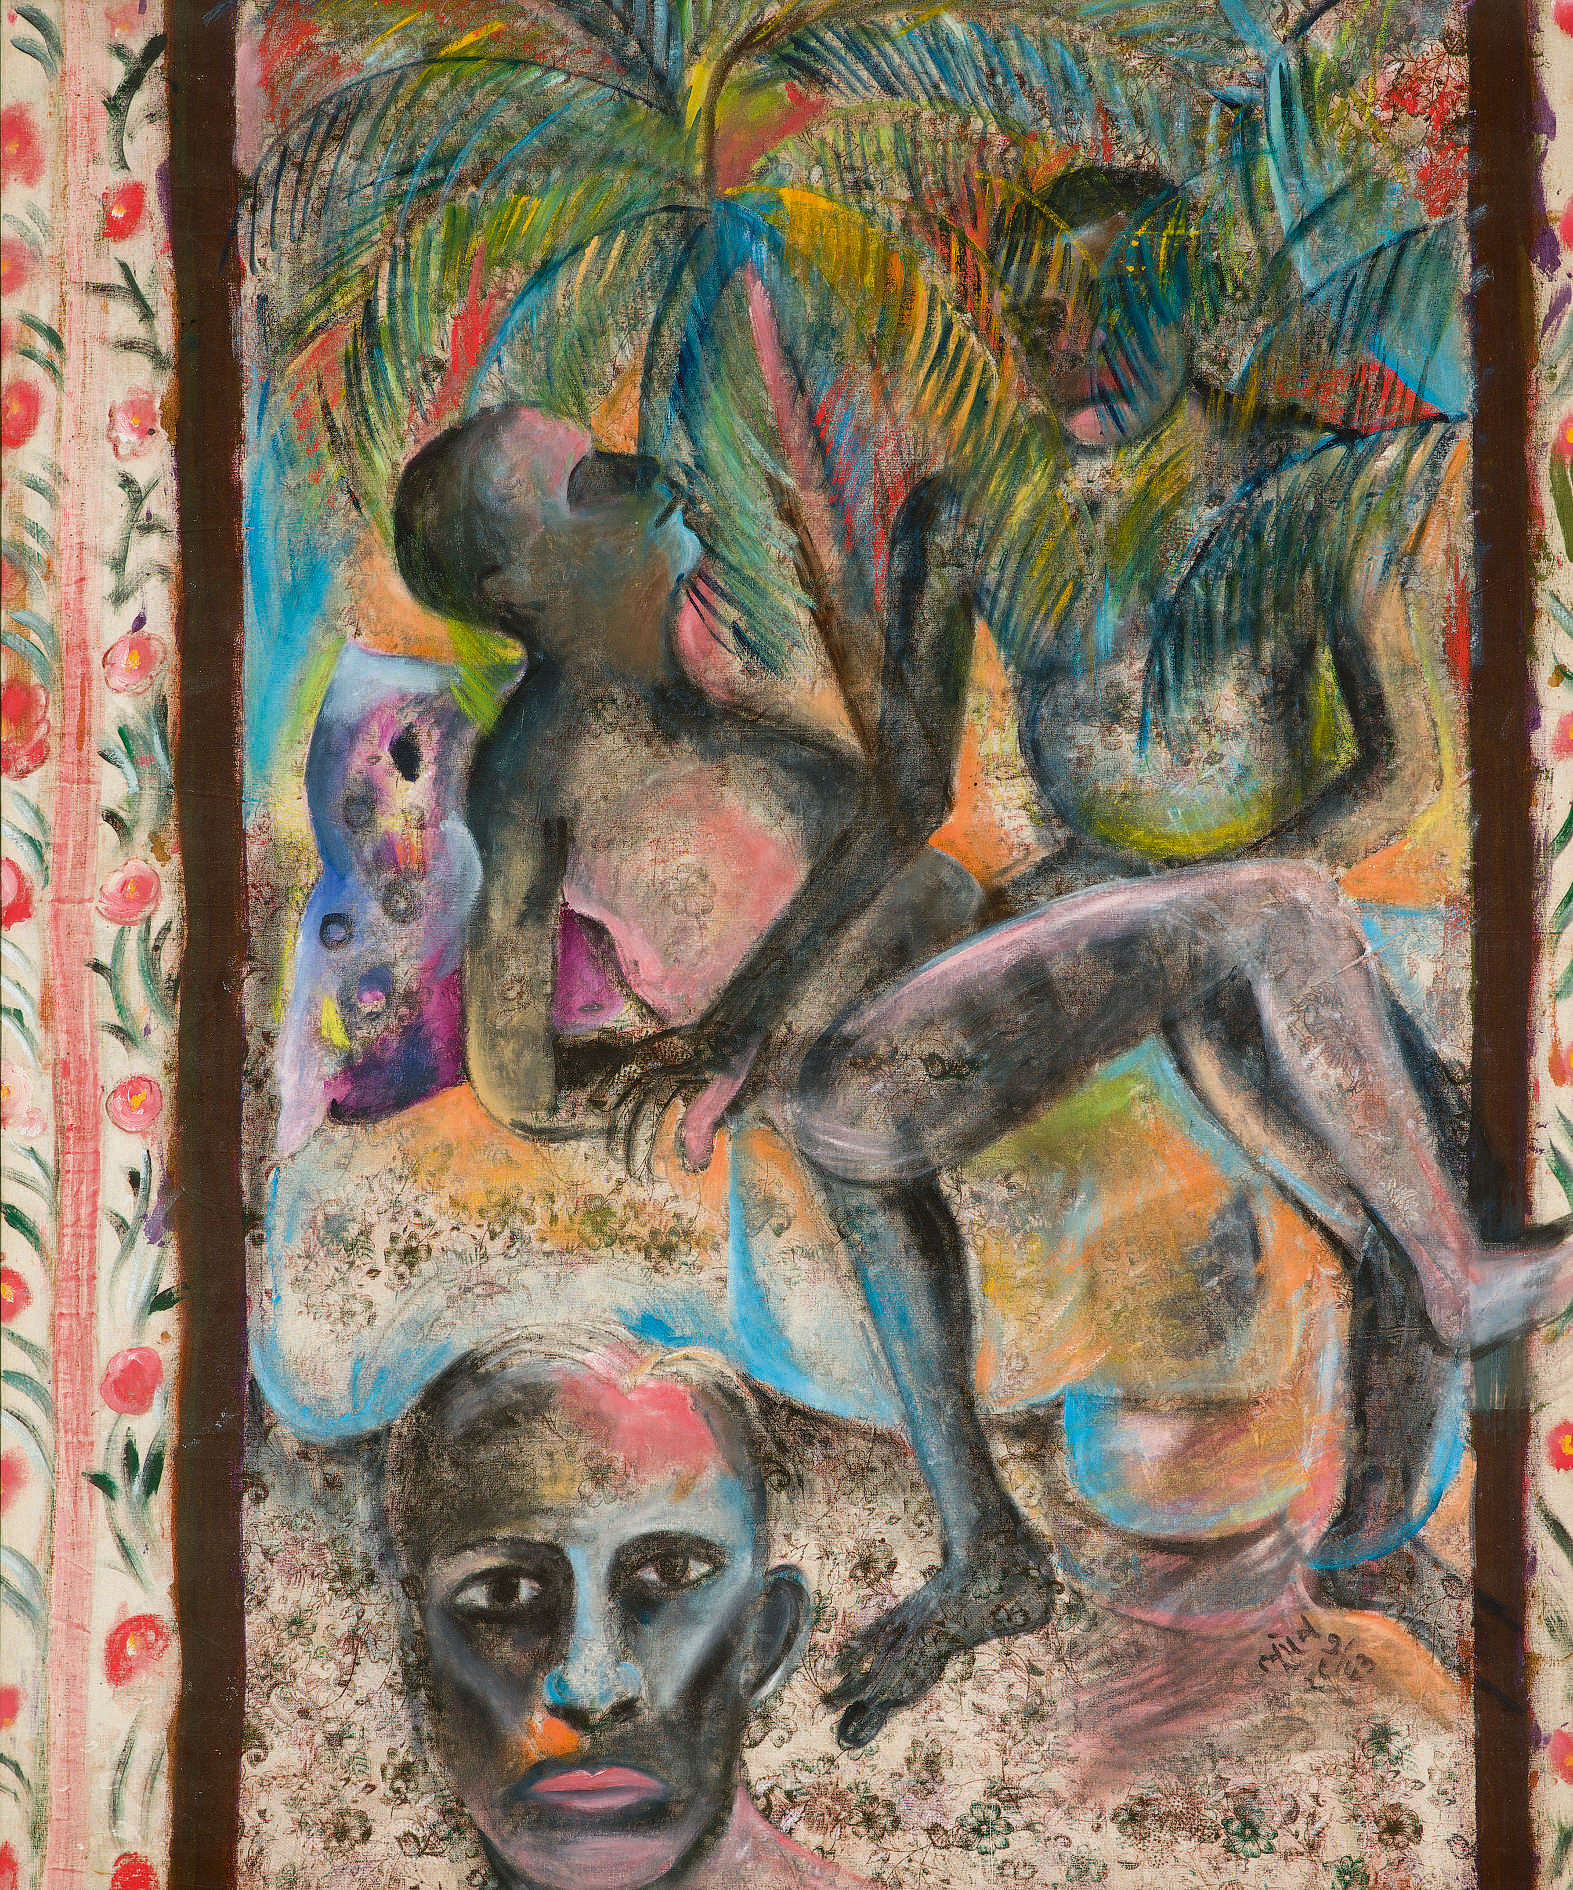 Bhupen Khakhar, In the Coconut Groves.